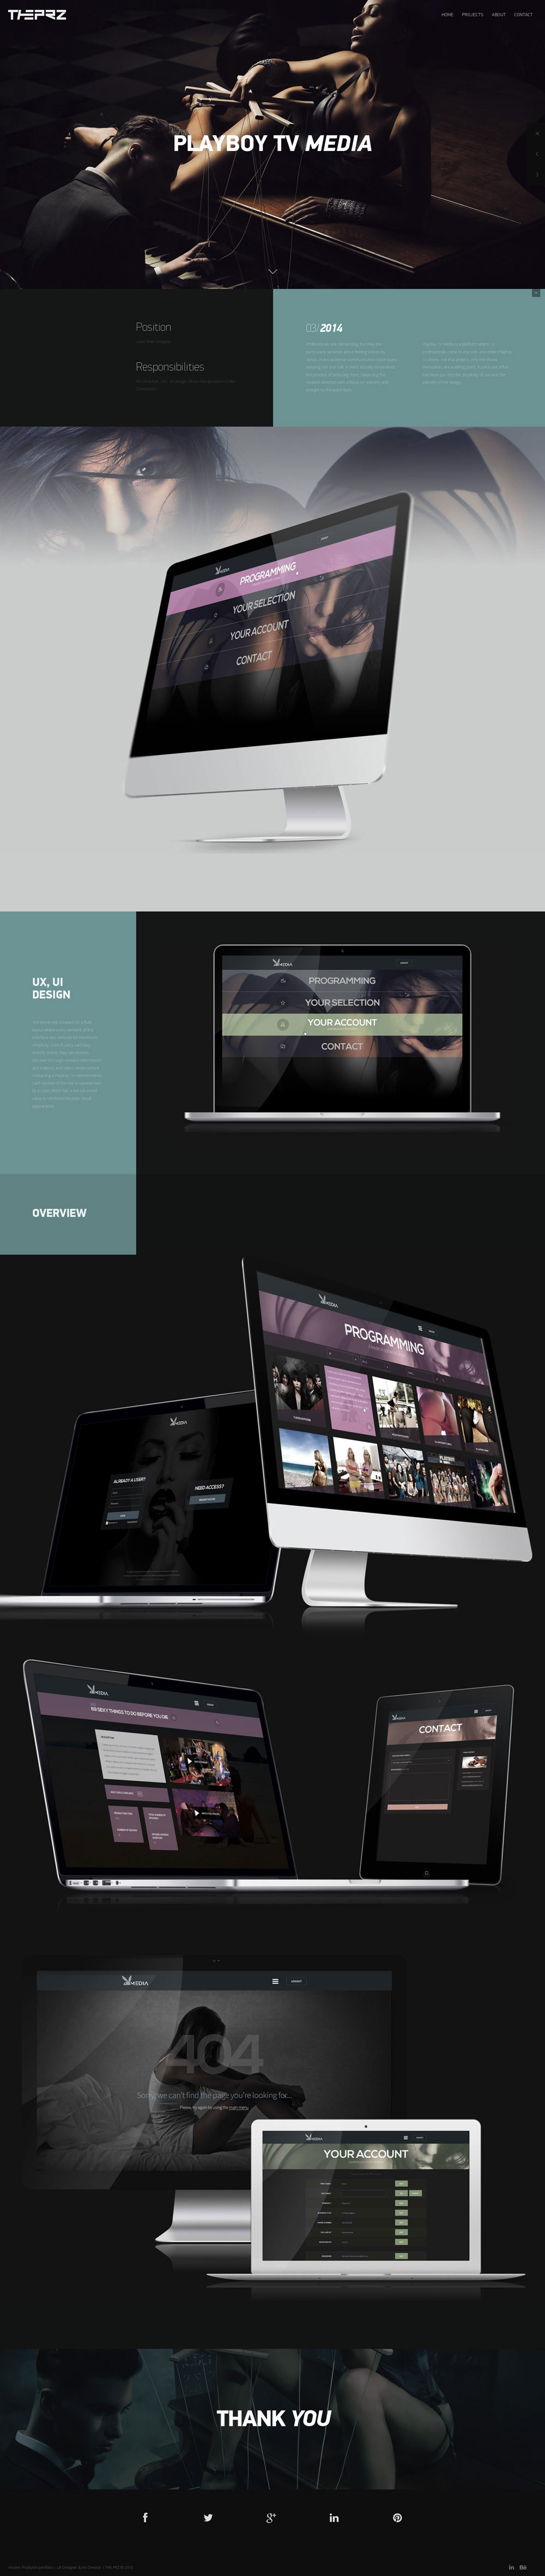 Playboy TV Media  - Project page - THE PRZ composition element